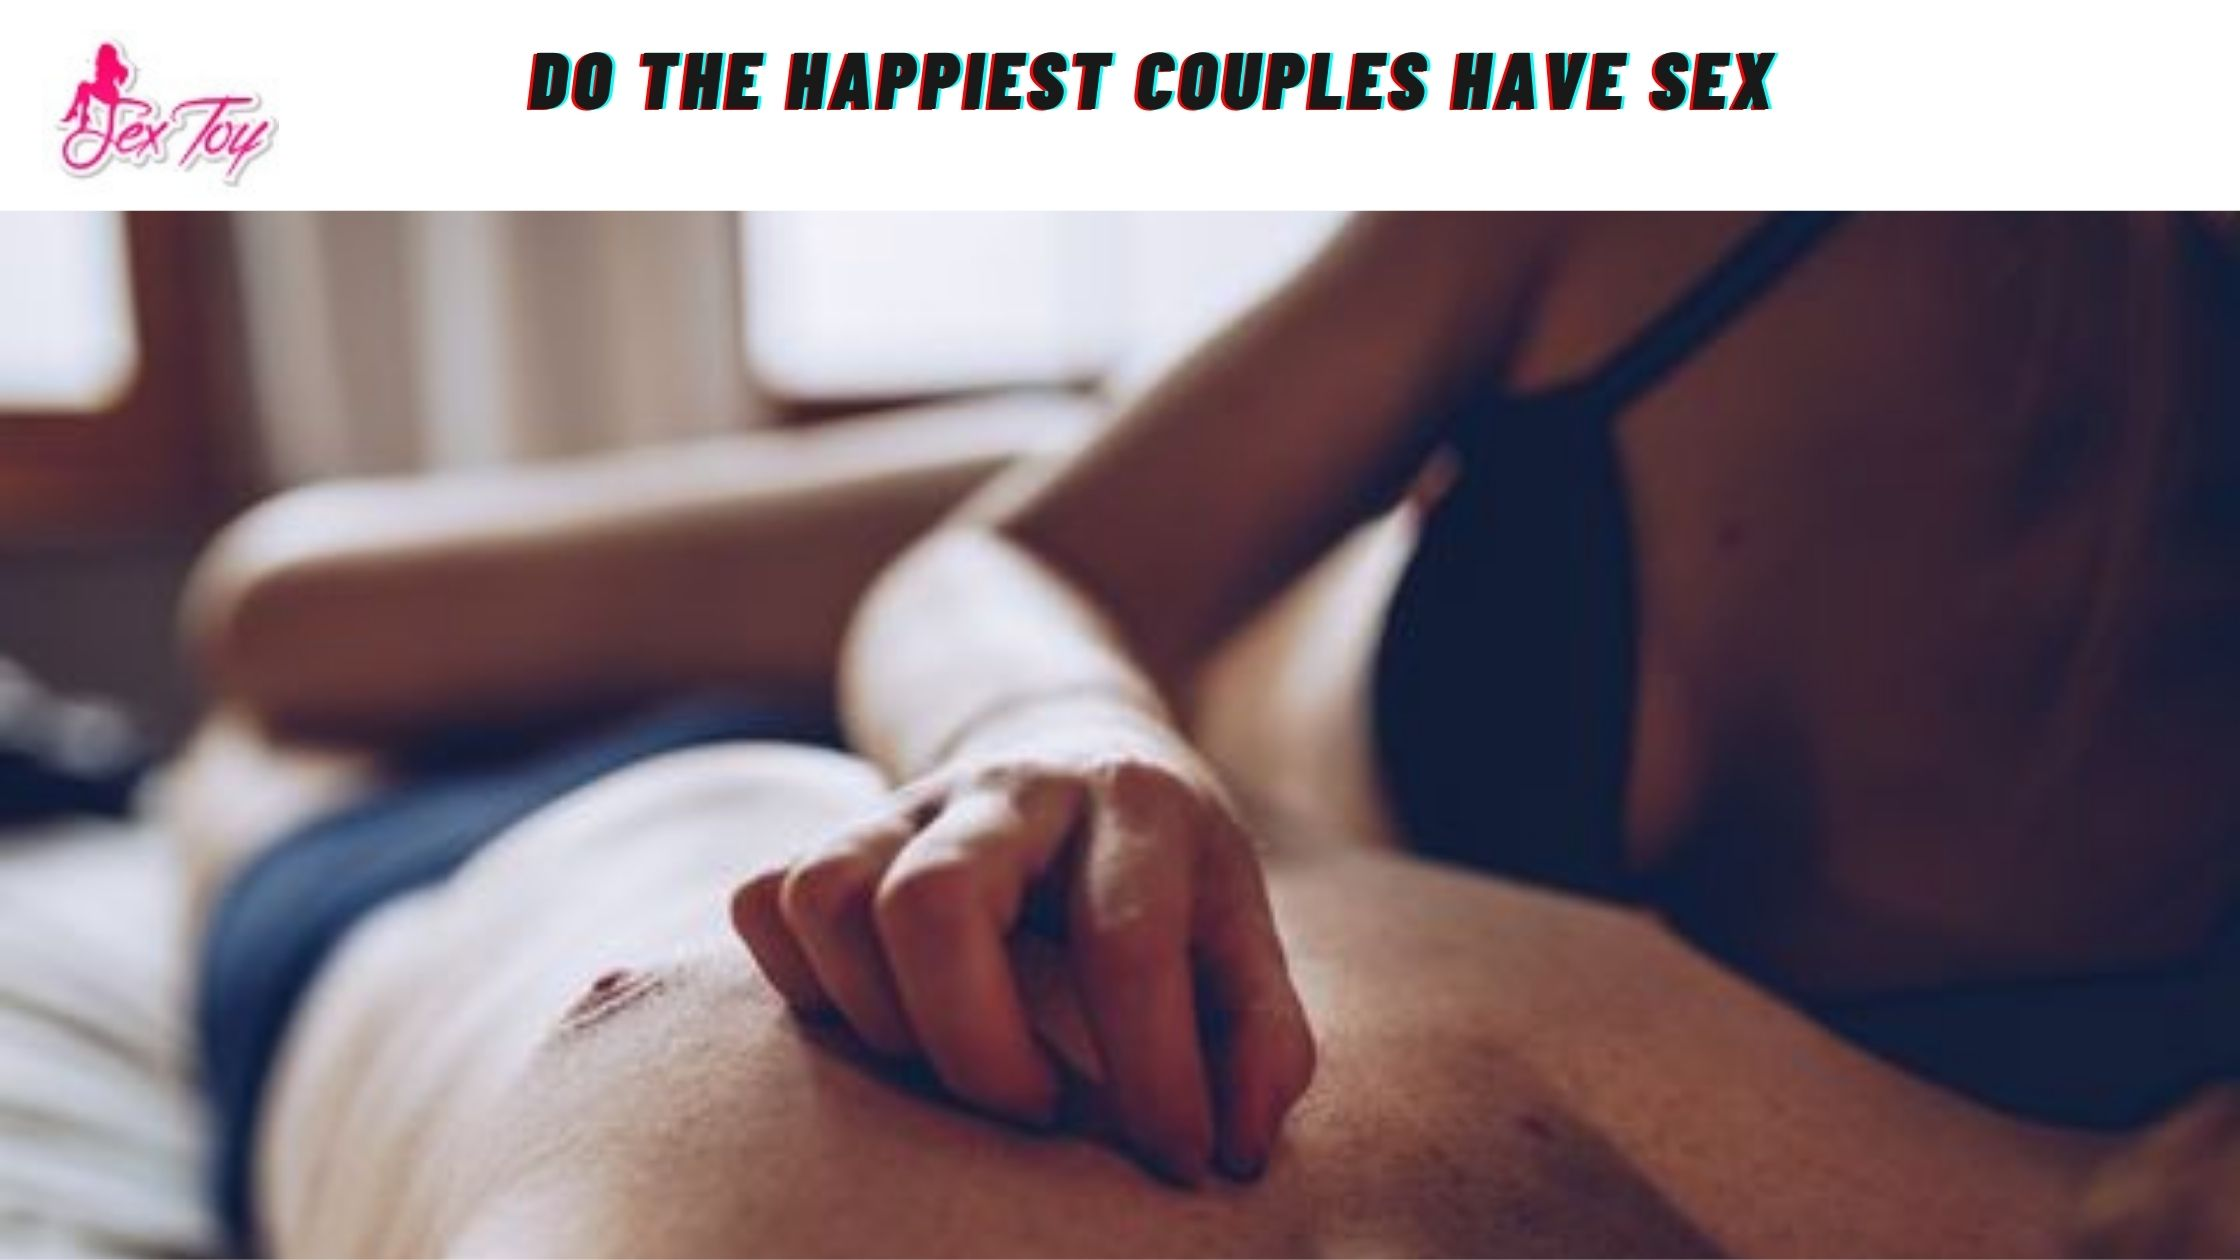 How Often Do The Happiest Couples Have Sex